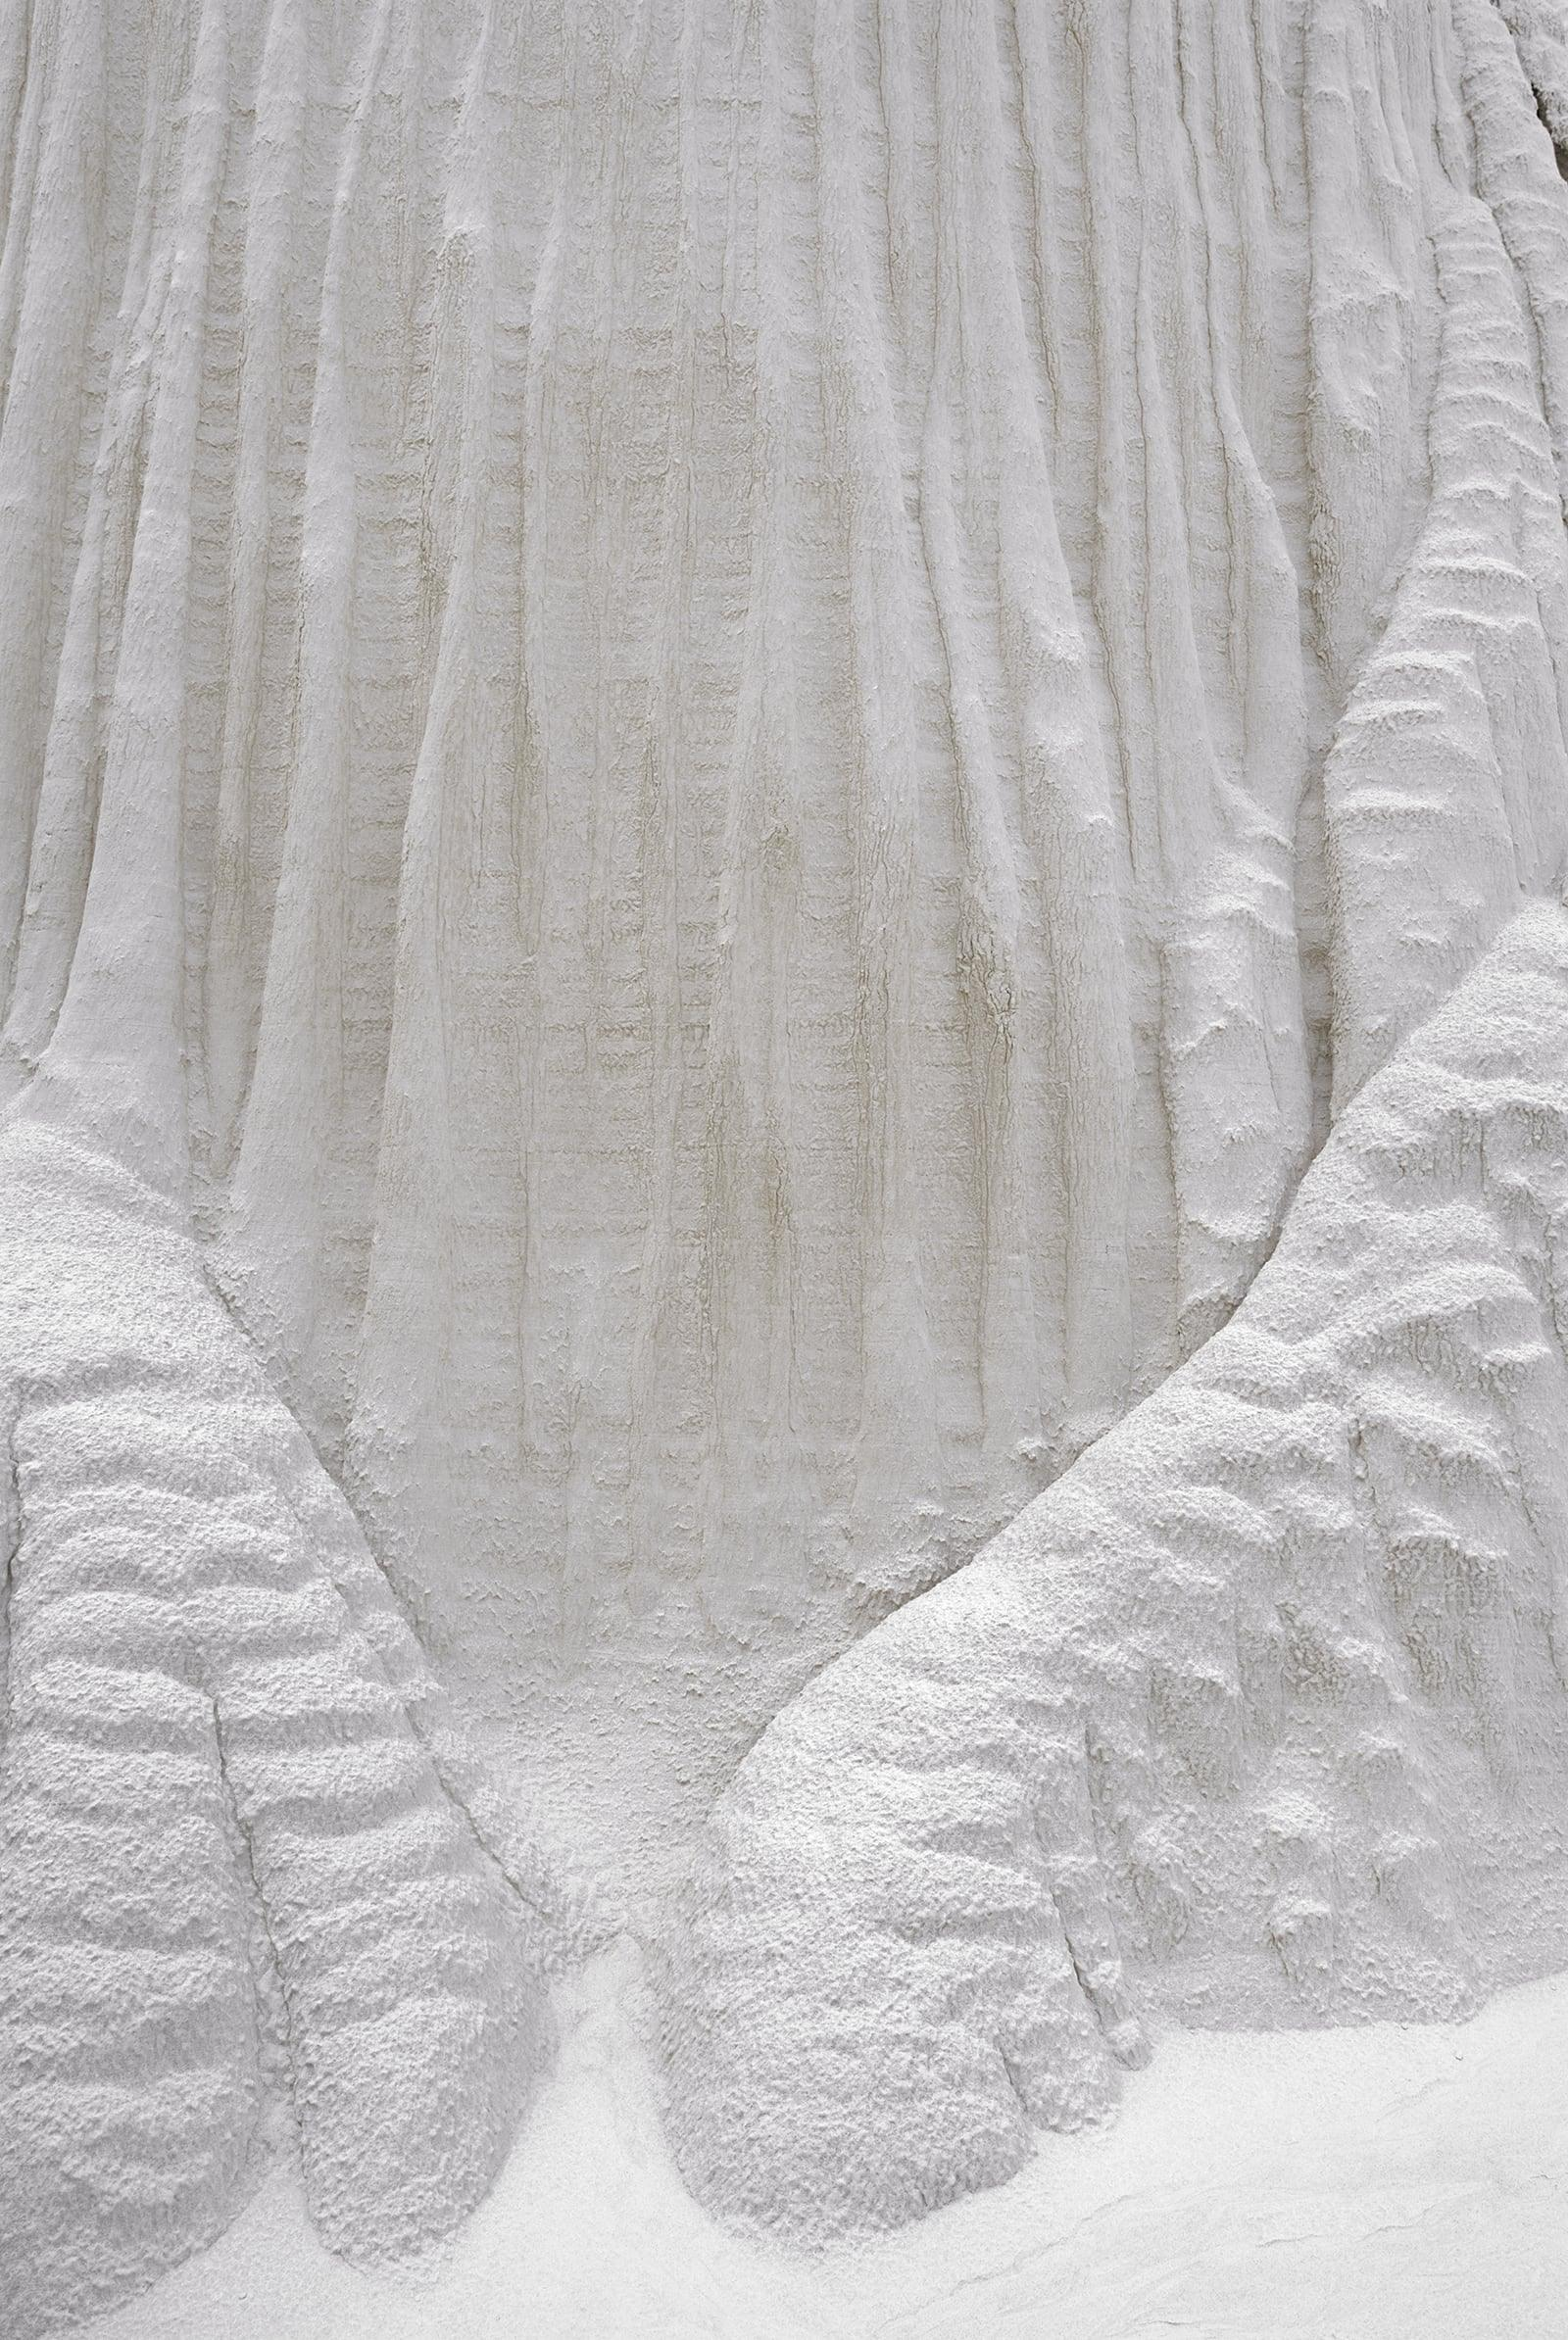 Close up of a white sandstone rock formation at the Wahweap Hoodoos Utah